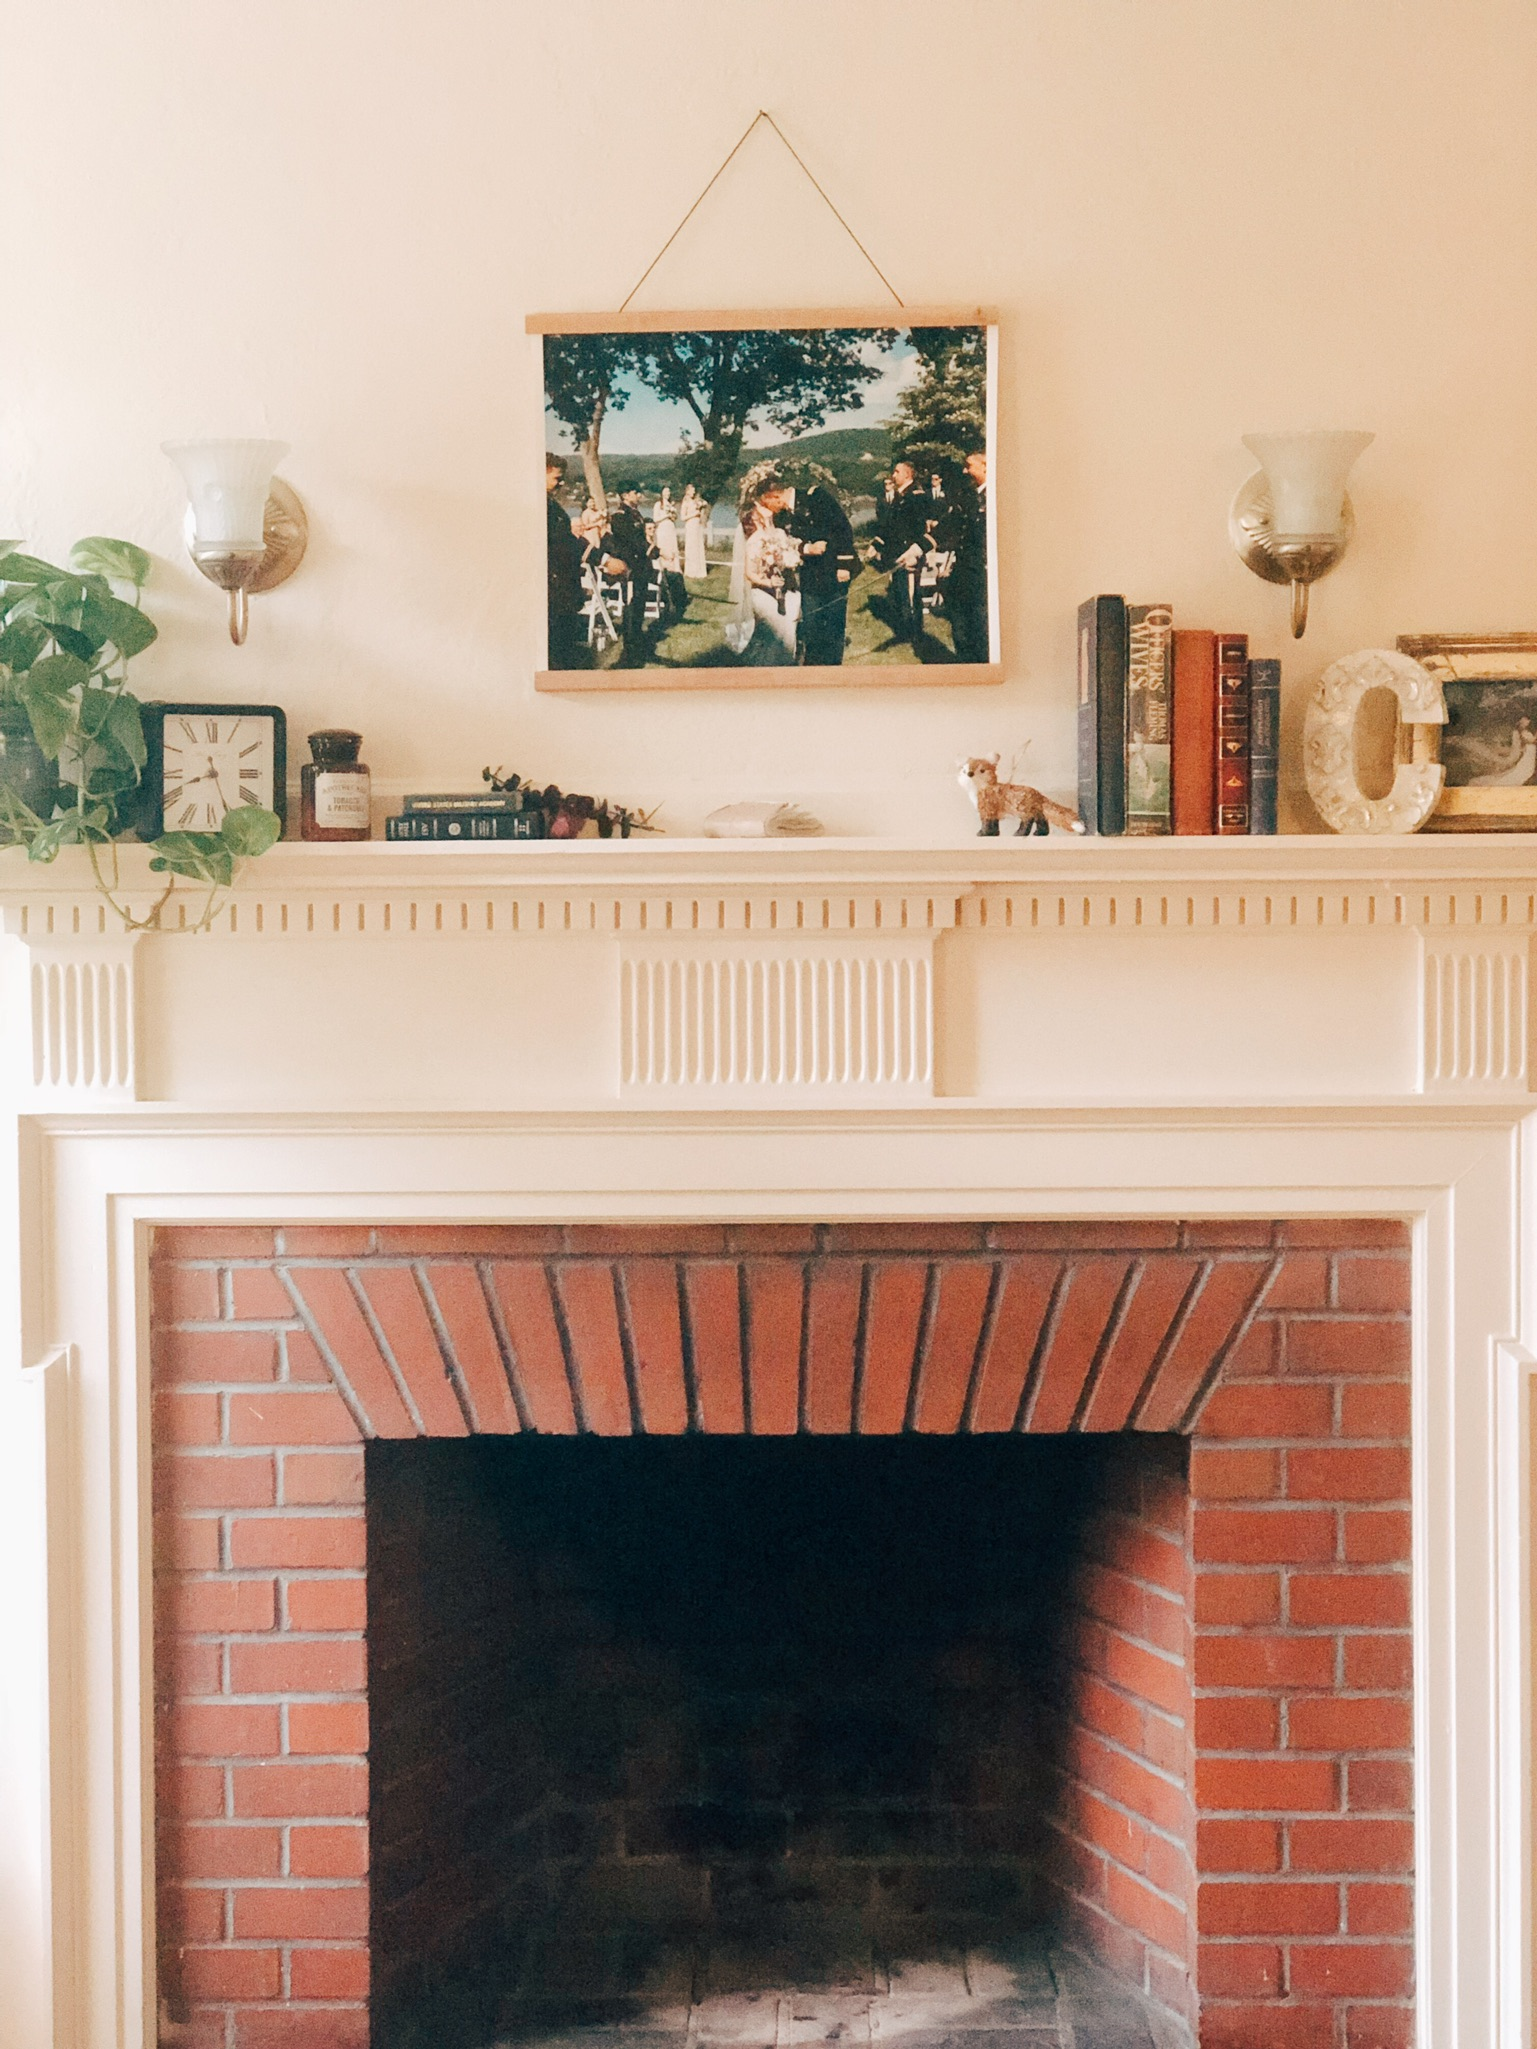 Parabo Press, Farmhouse Fireplace, How to style a mantle, fireplace mantle ideas